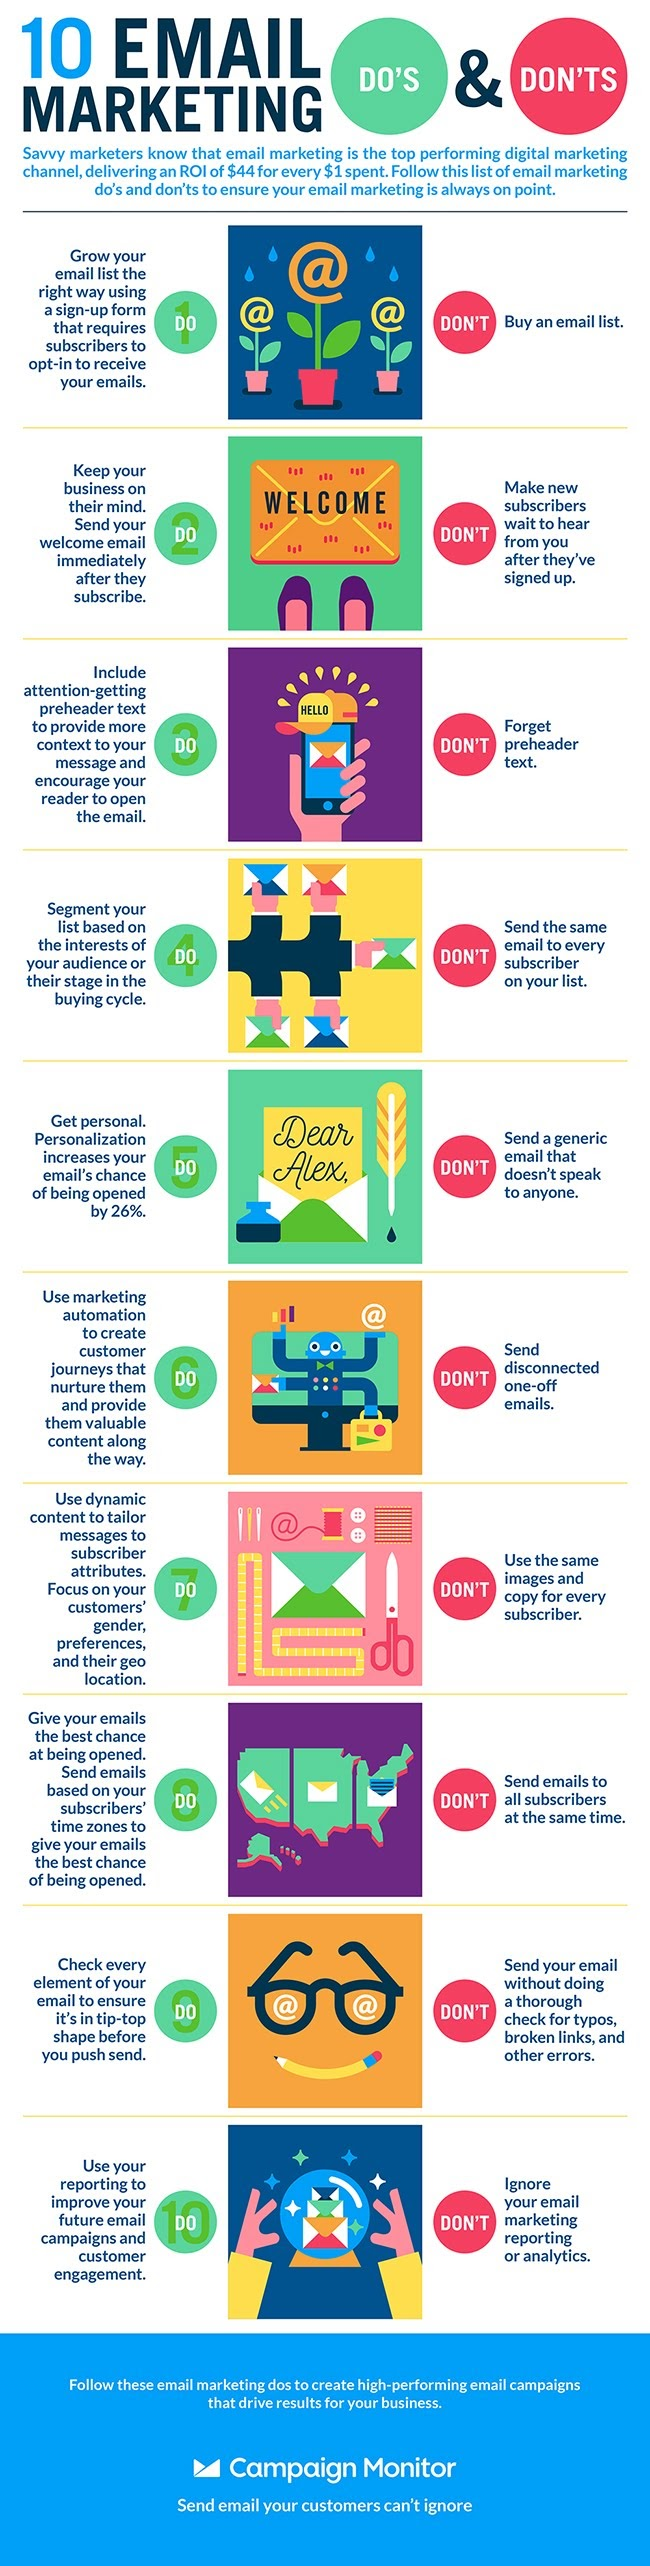 10 Email Marketing Do's and Don'ts - #infographic